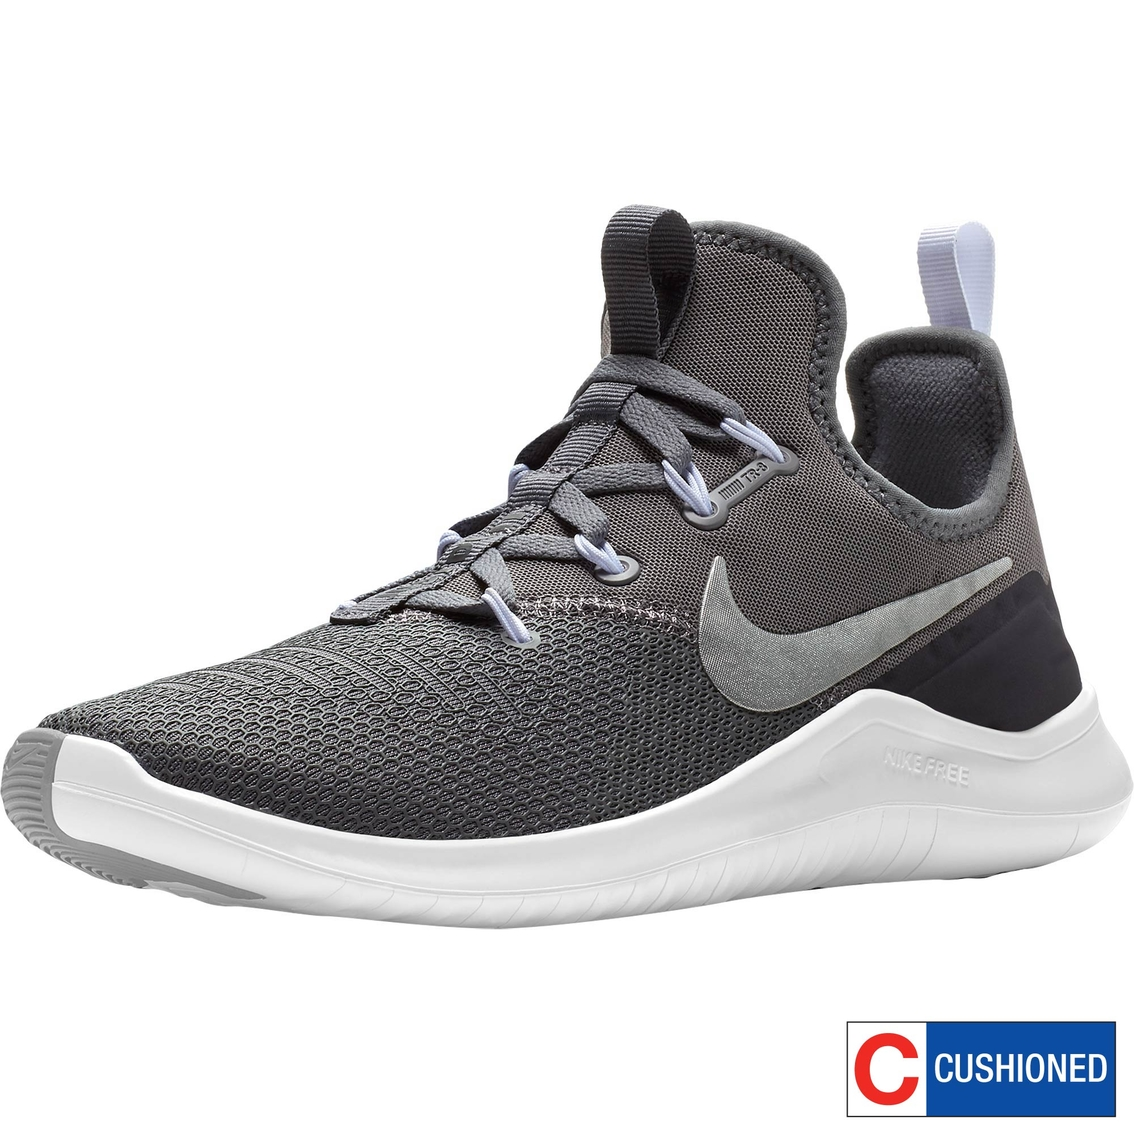 dd634adccfb52 Nike Women s Free Tr8 Training Shoes